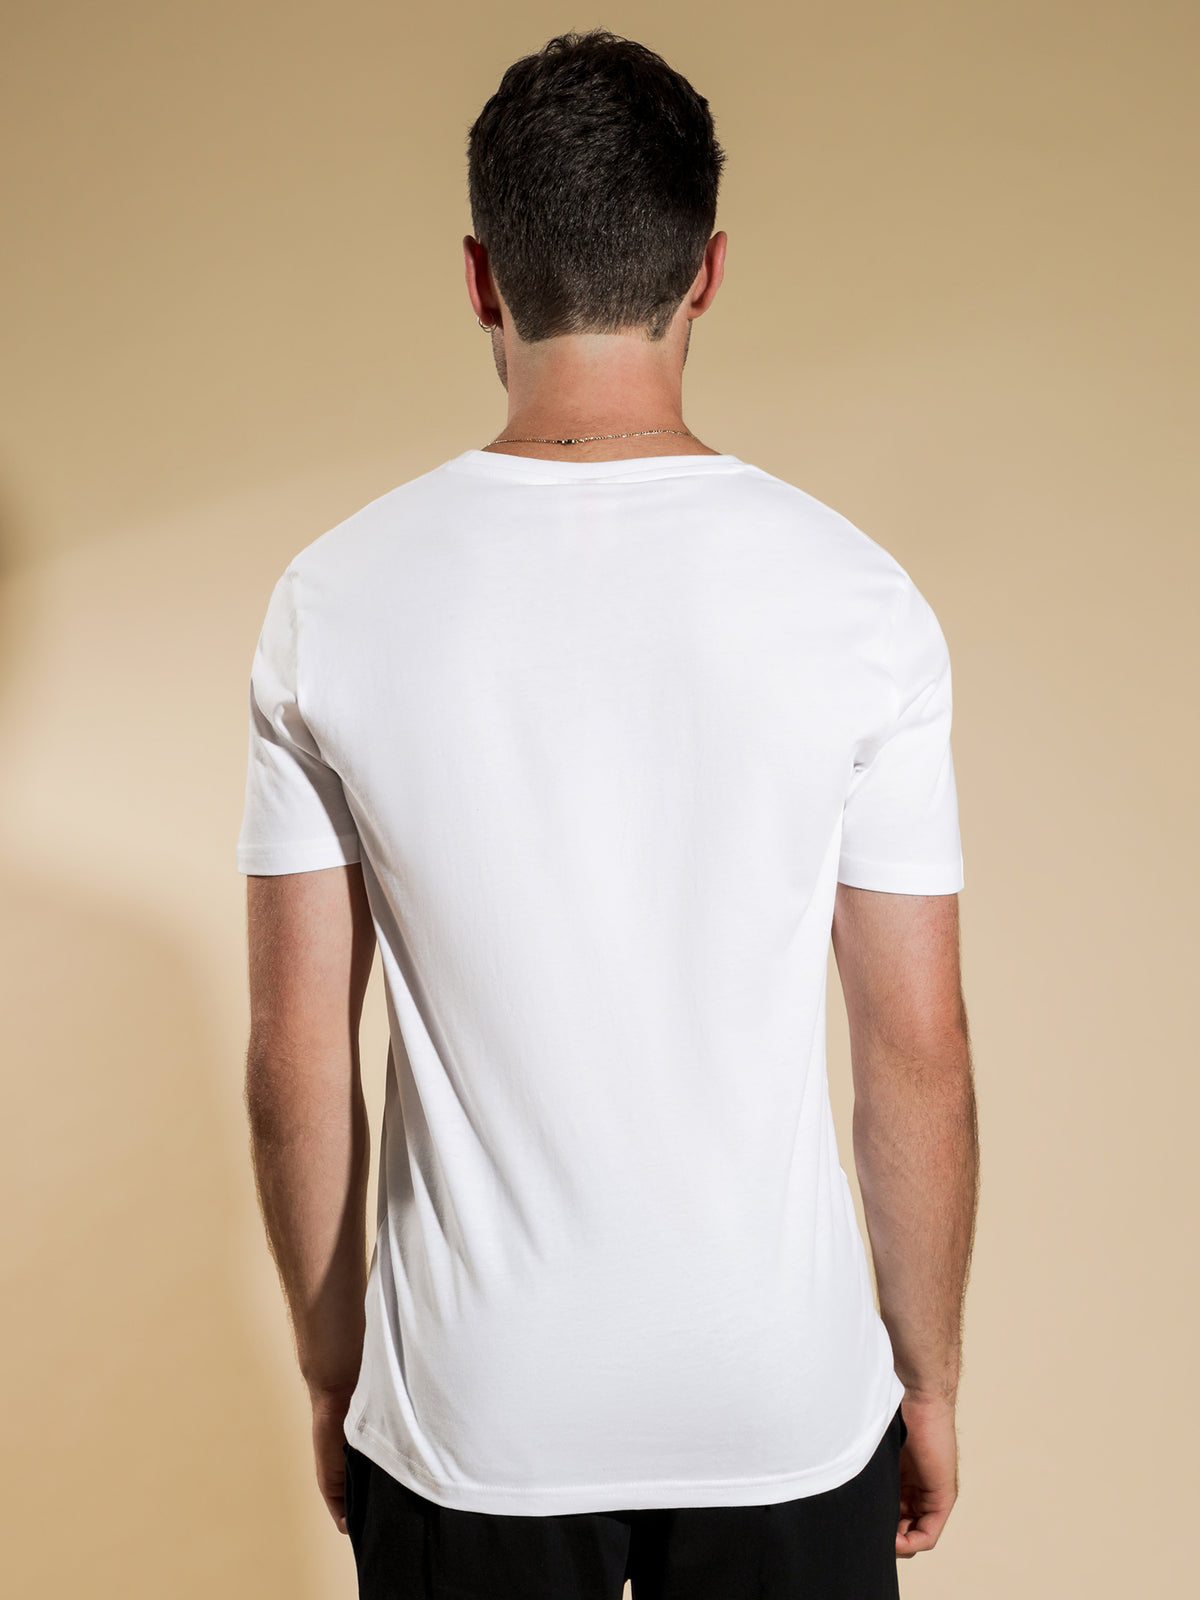 Authentic Starot T-Shirt in White